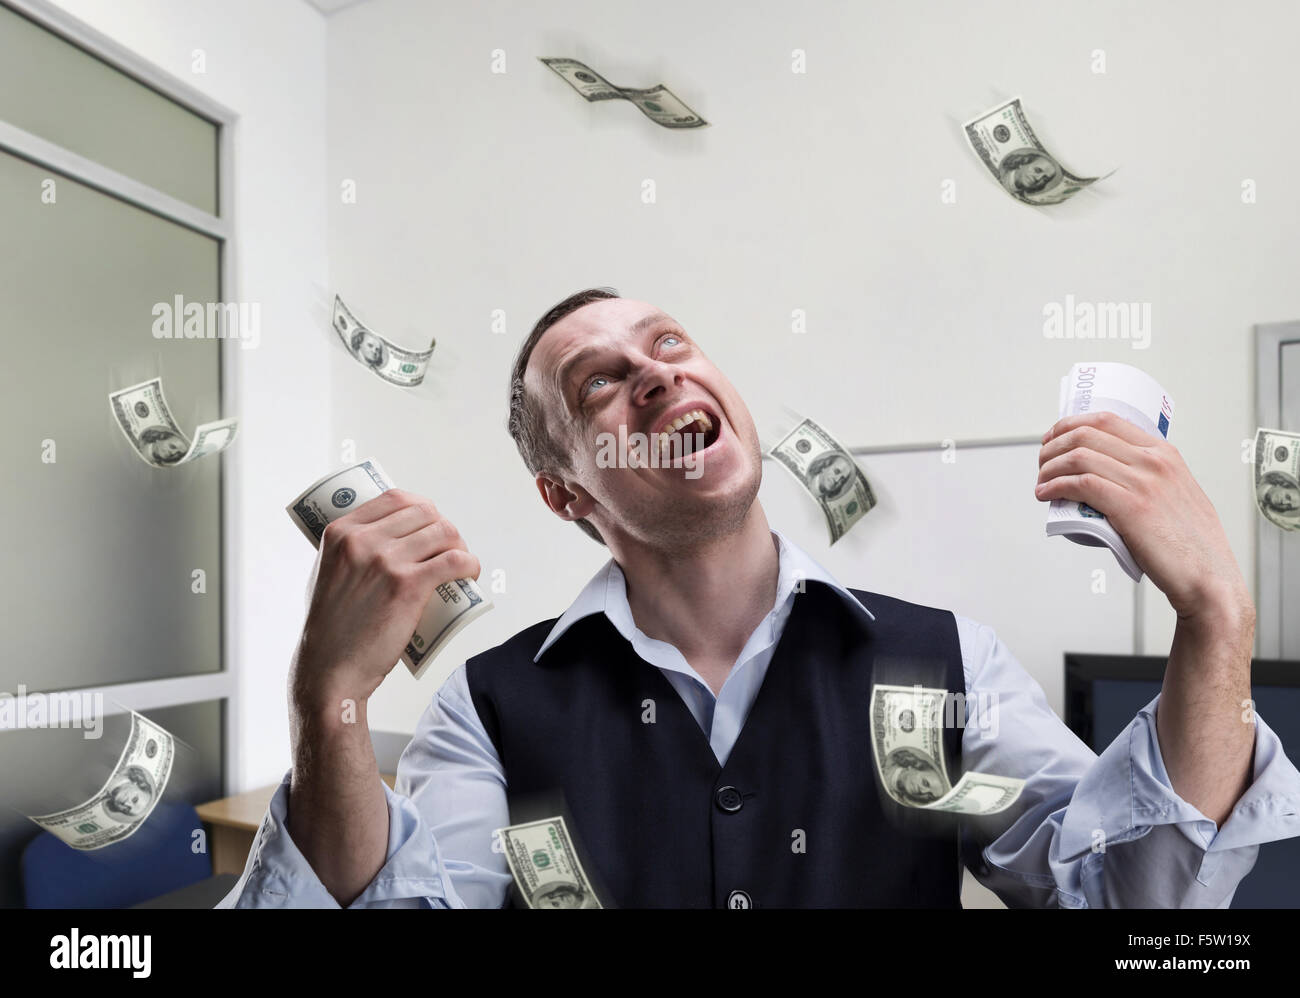 Happy businessman holds money and dreams in the office - Stock Image